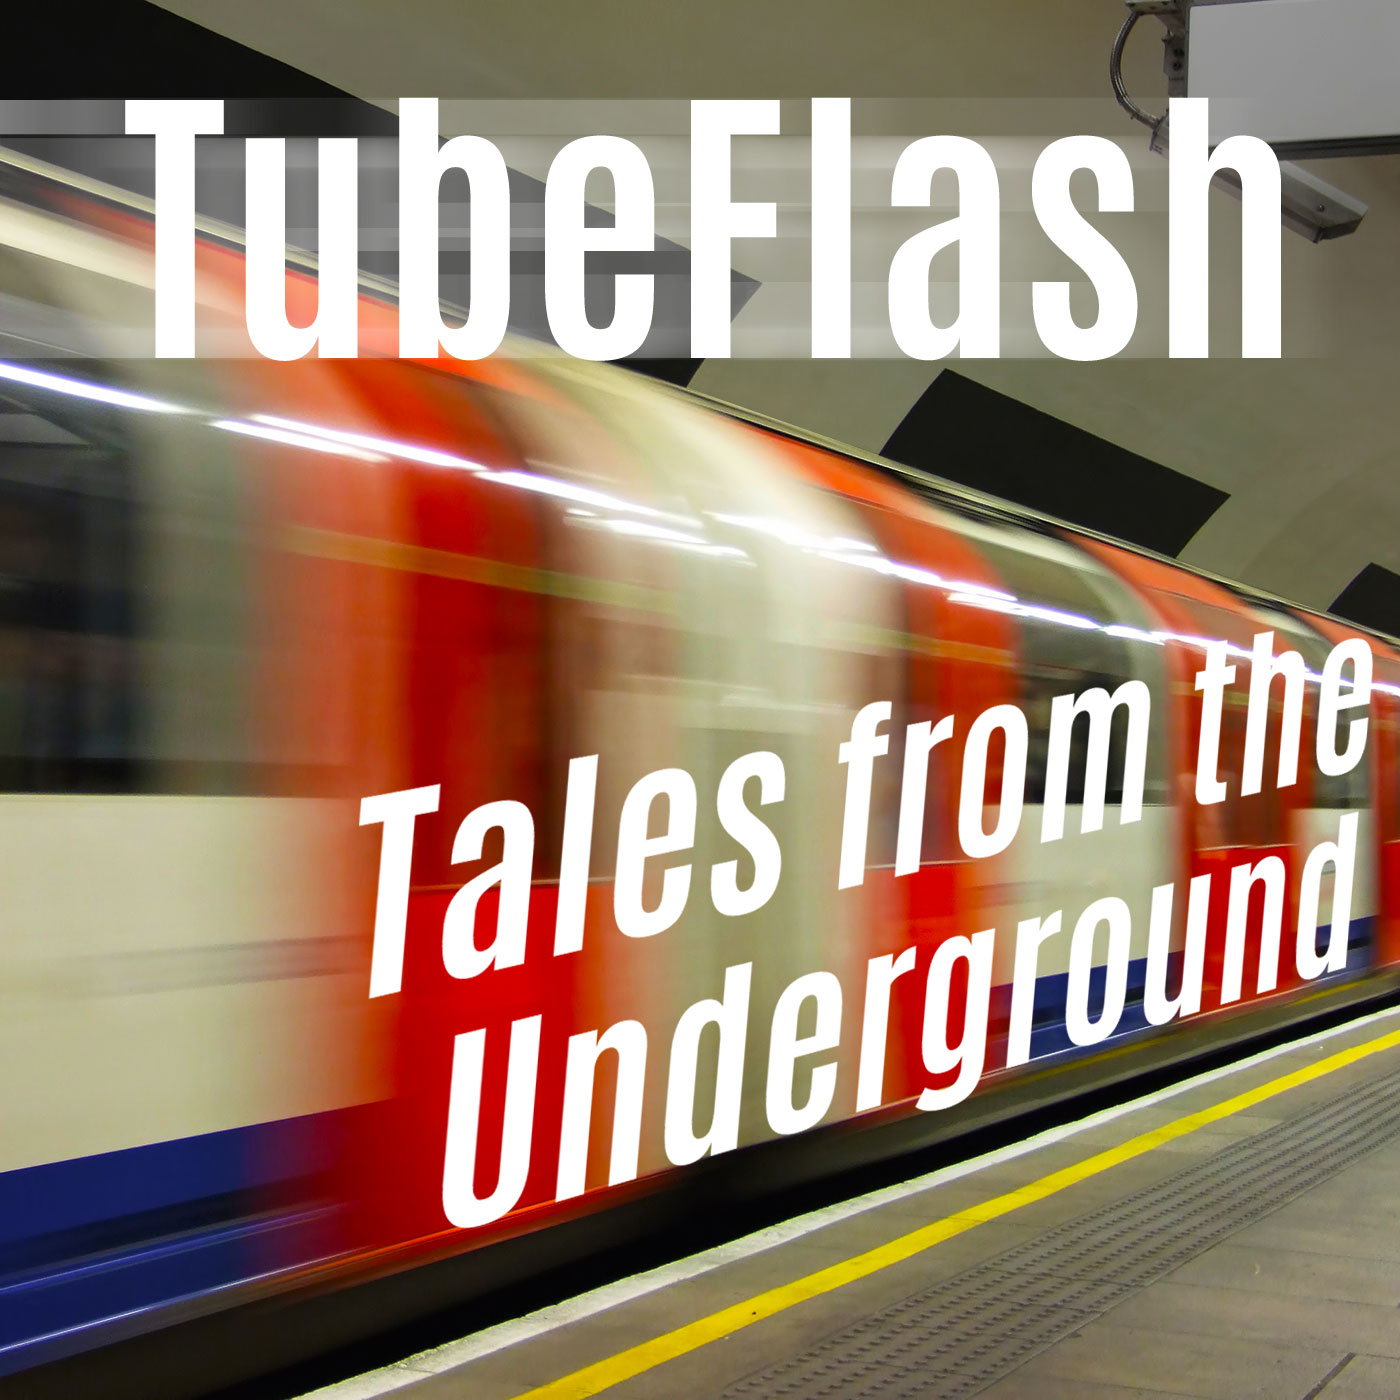 TubeFlash - Flash Fiction Inspired by London Underground